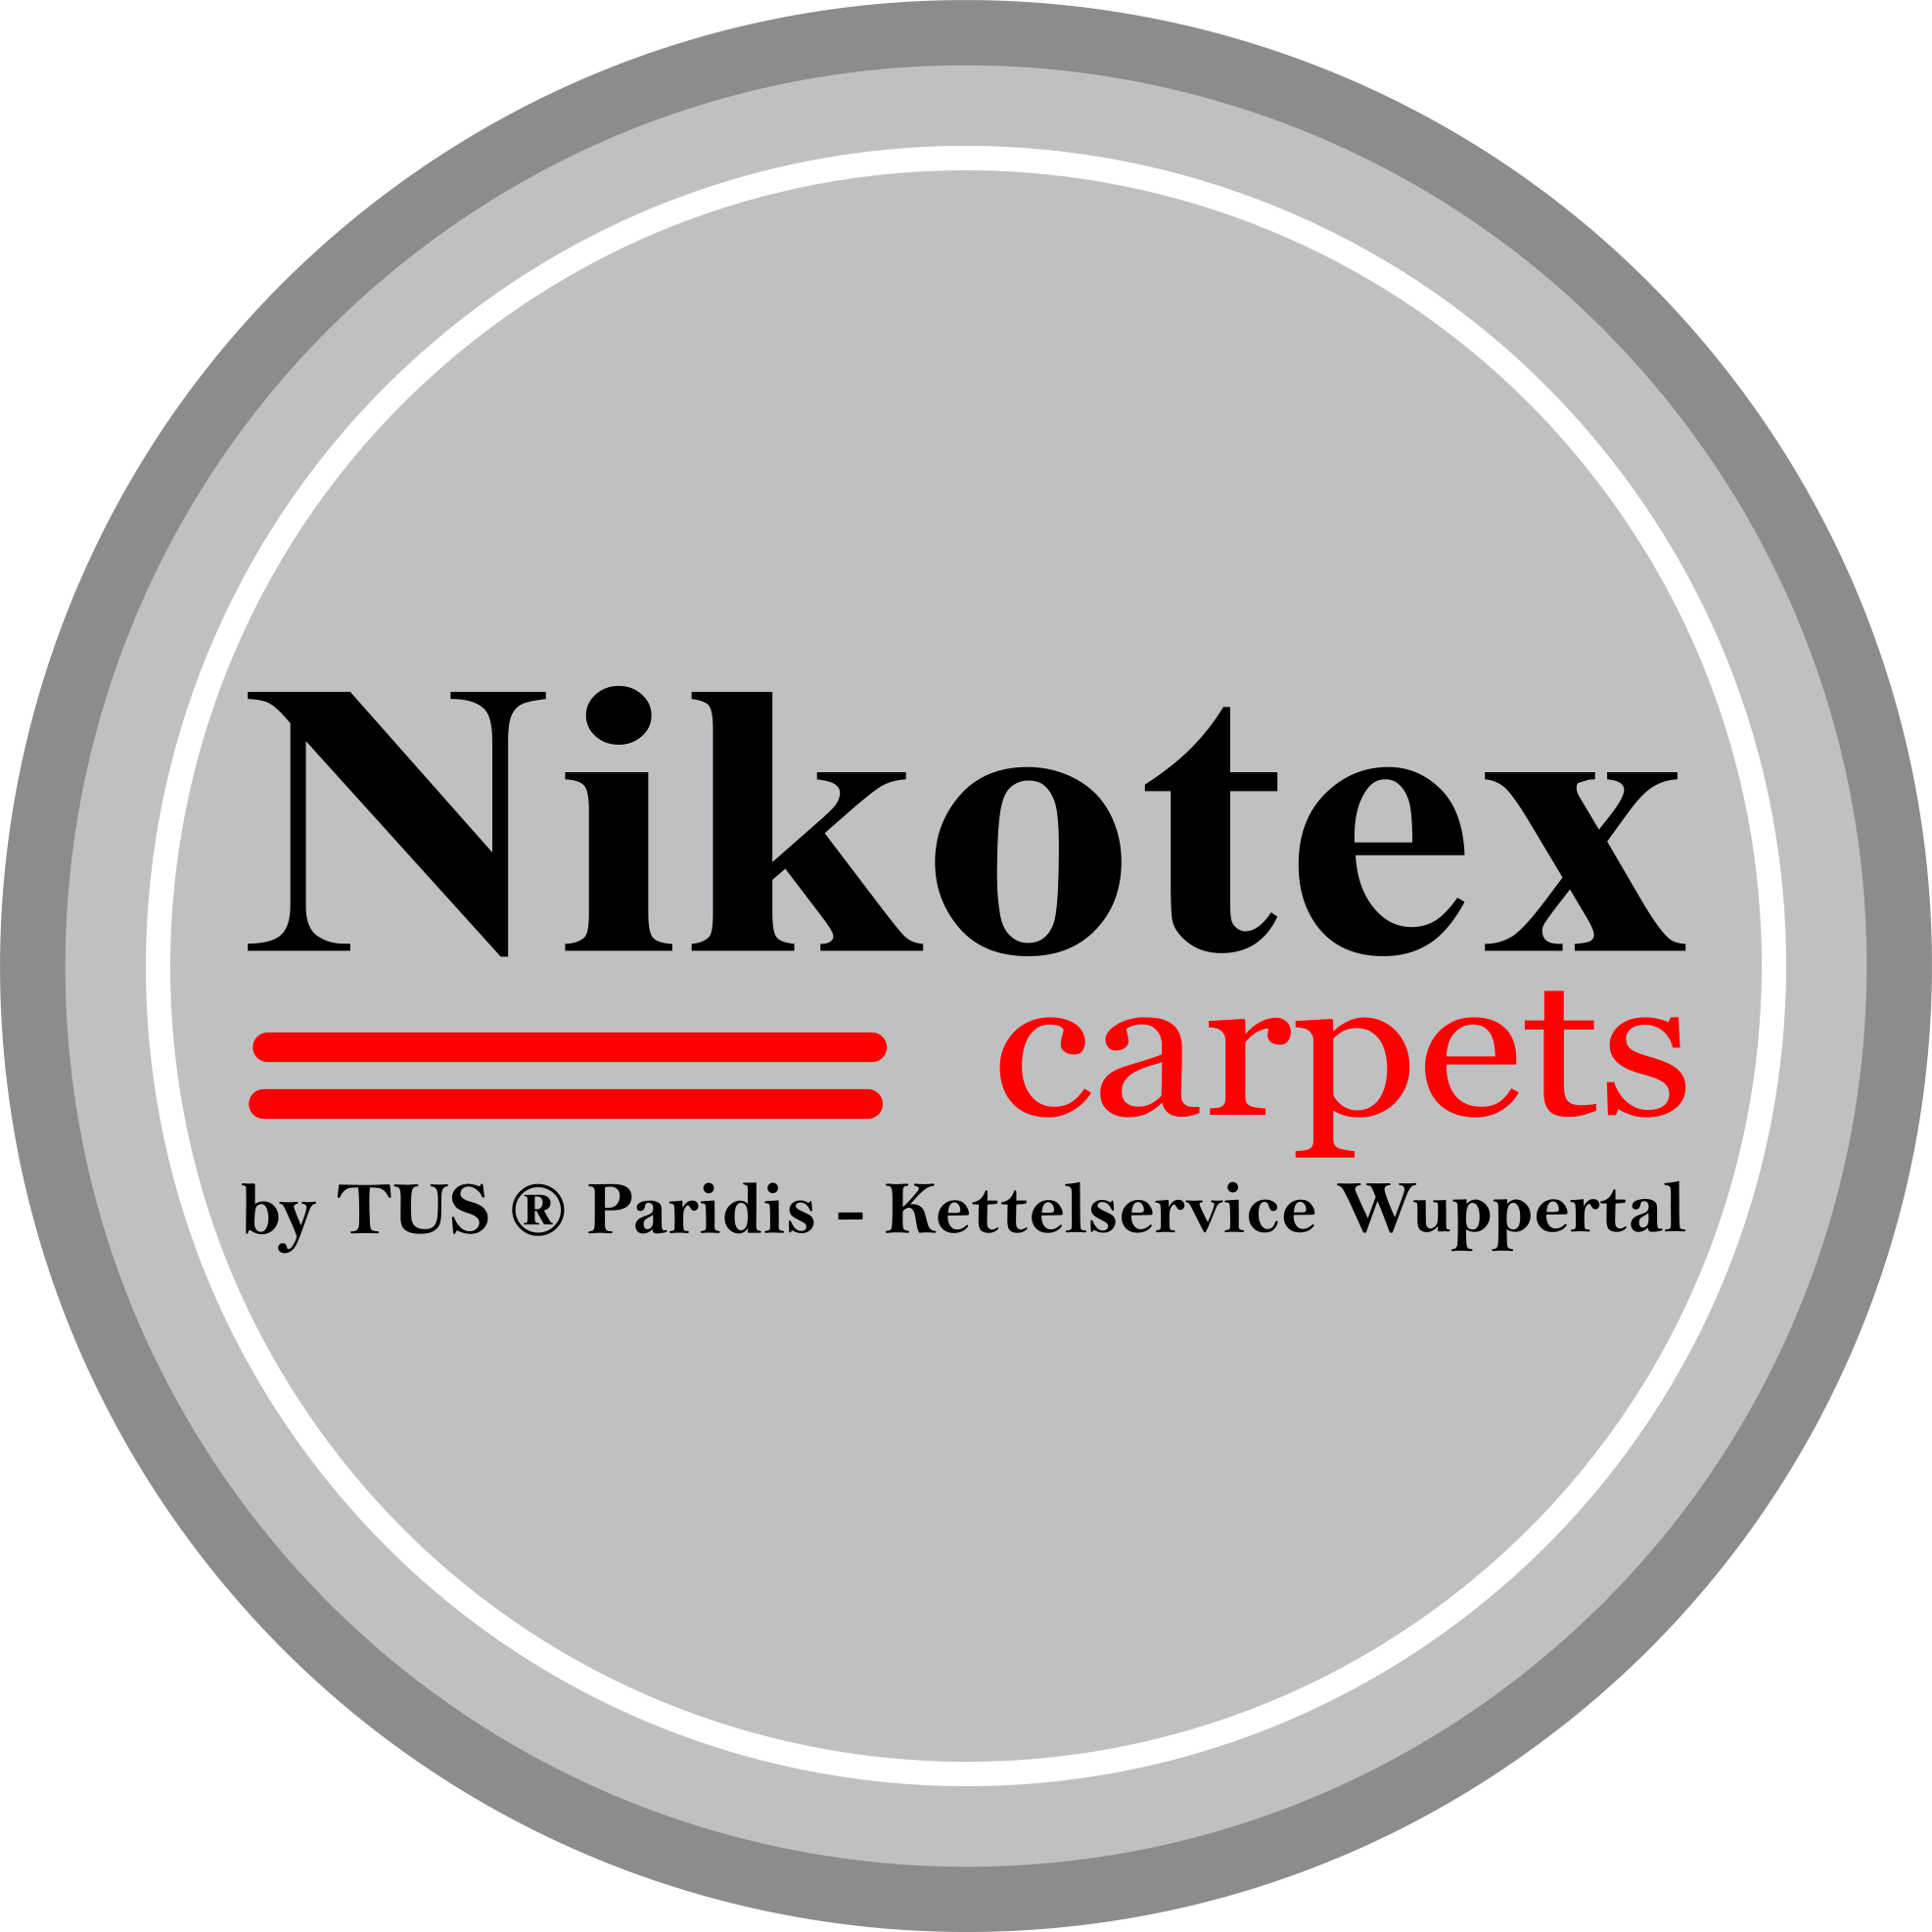 NIKOTEX by TUS Paridis